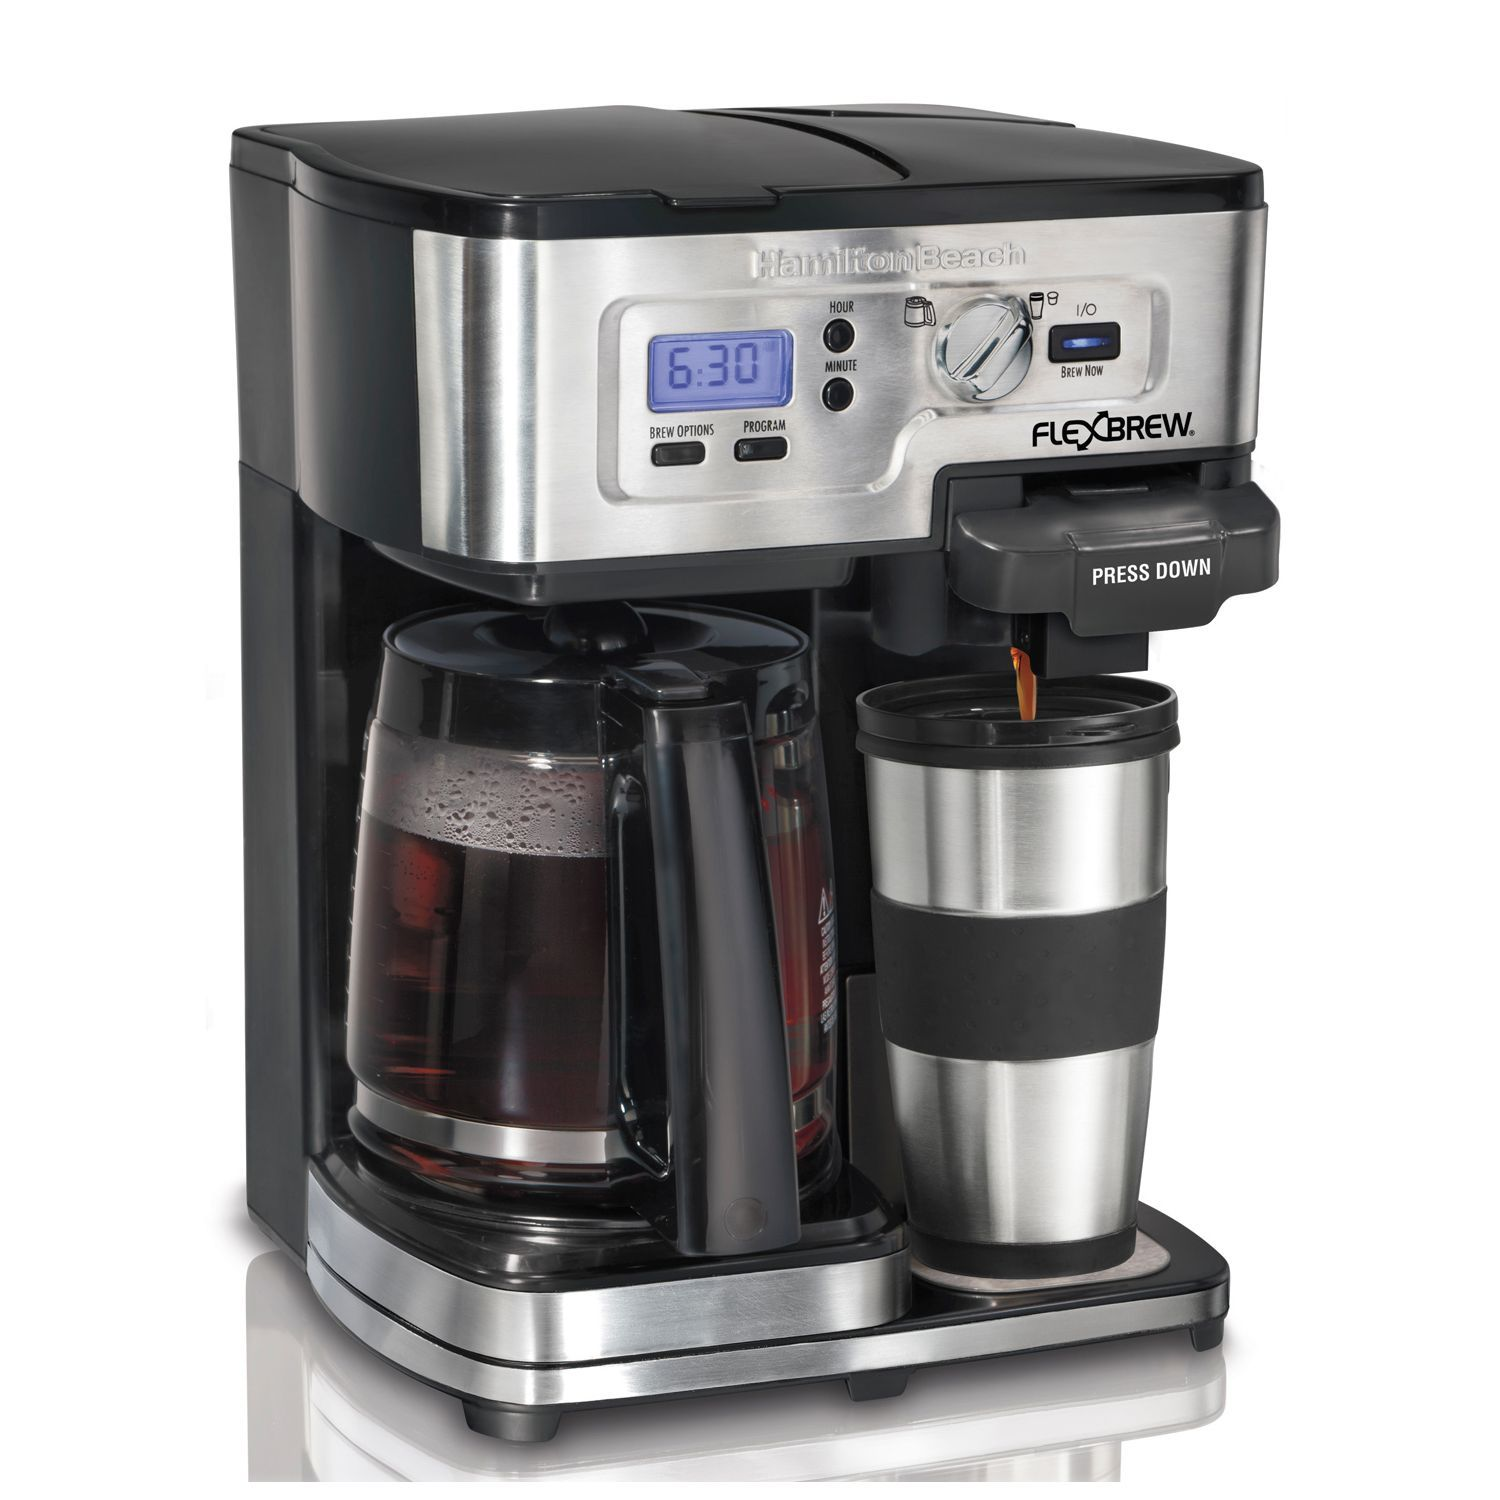 Kohl's will be offering the Hamilton Beach FlexBrew 2-Way Coffee Maker for only $ (reg. $) during the Kohl's Black Friday Sale (see page 19 of the ad). You save 27% off the retail price during this sale. Plus, this item ships free. Grab this deal at .